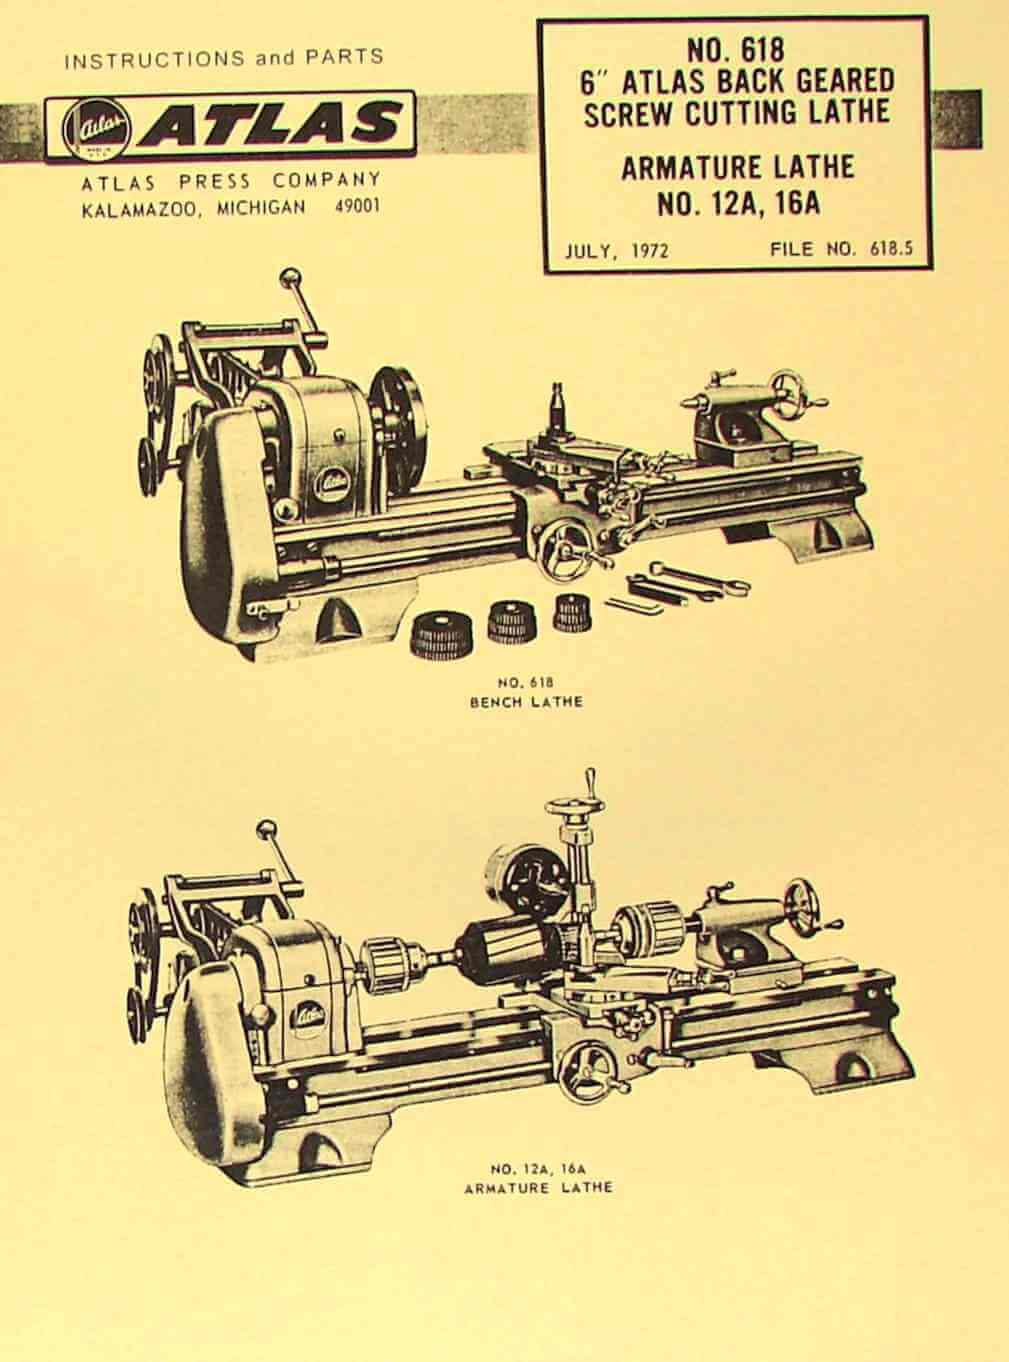 atlas-craftsman 6″ metal lathe no  618 instructions & parts manual